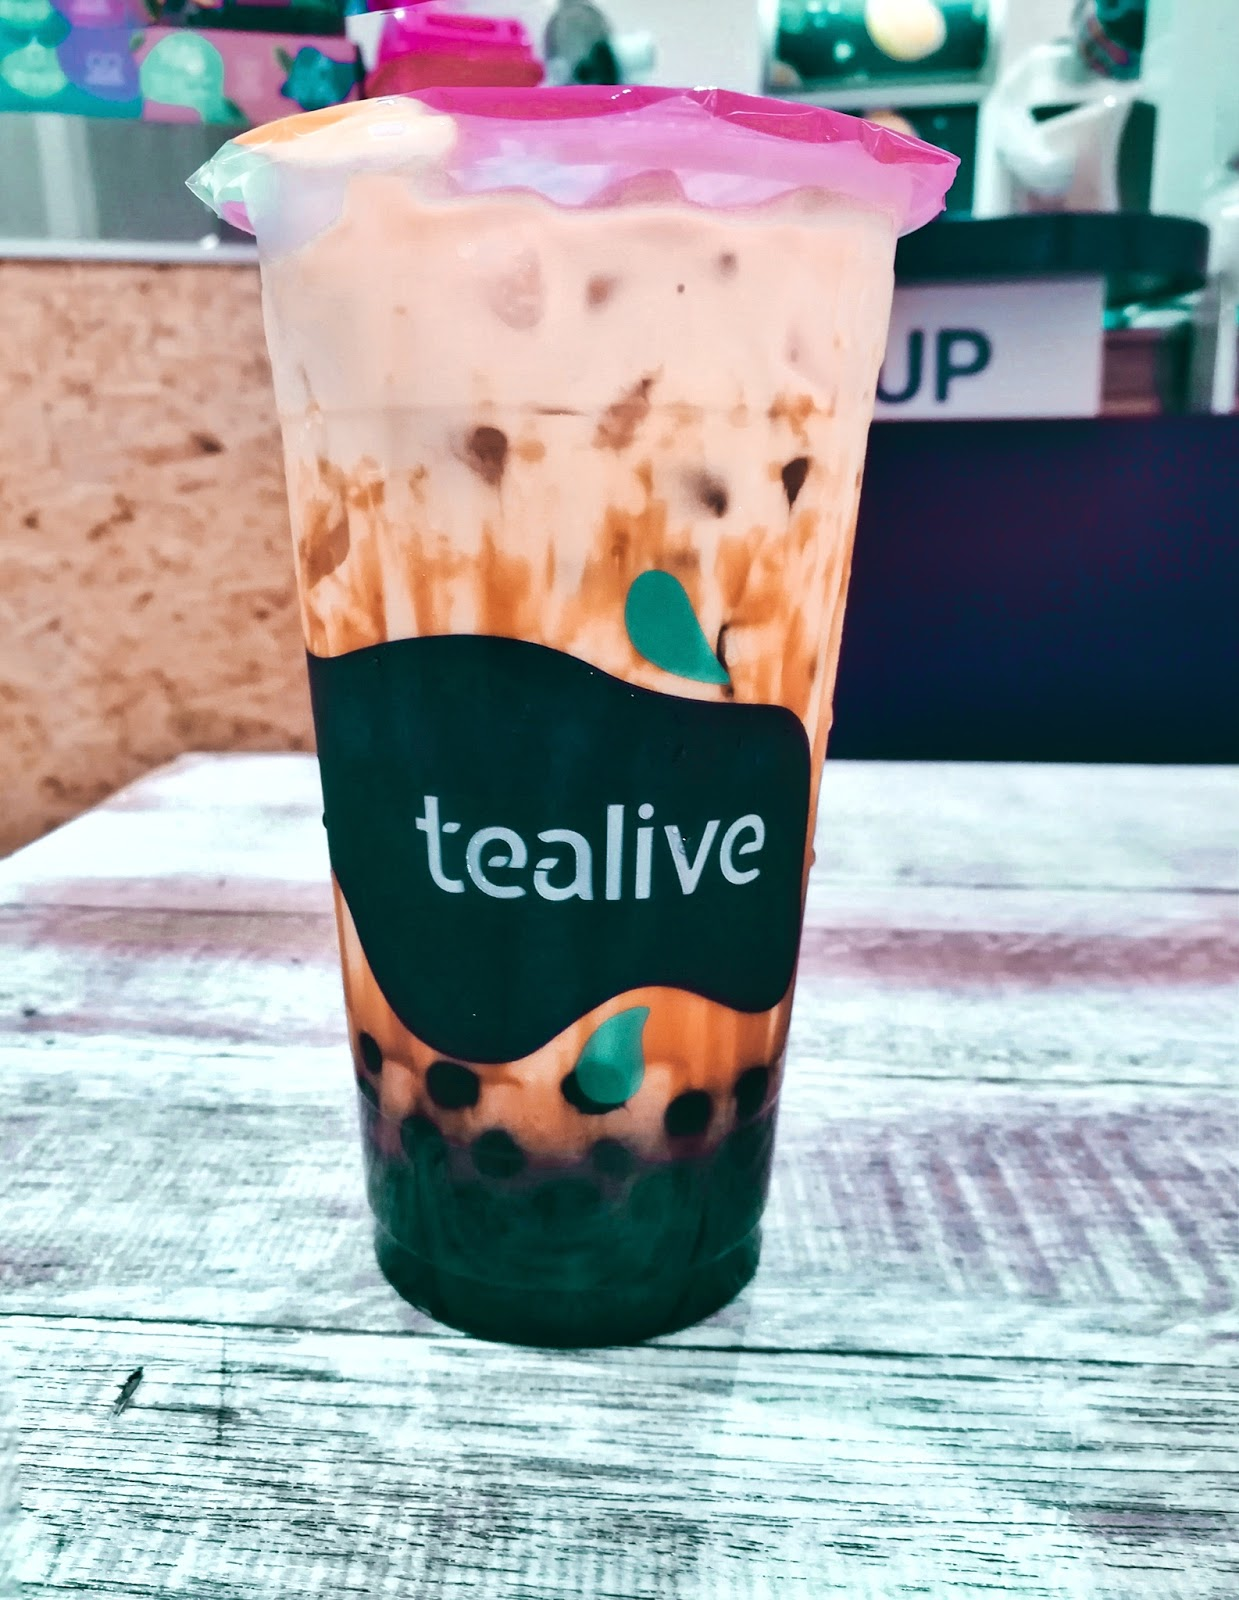 BROWN SUGAR BOBA MILK- THE BEST & WORST I HAVE TRIED - Eunice C